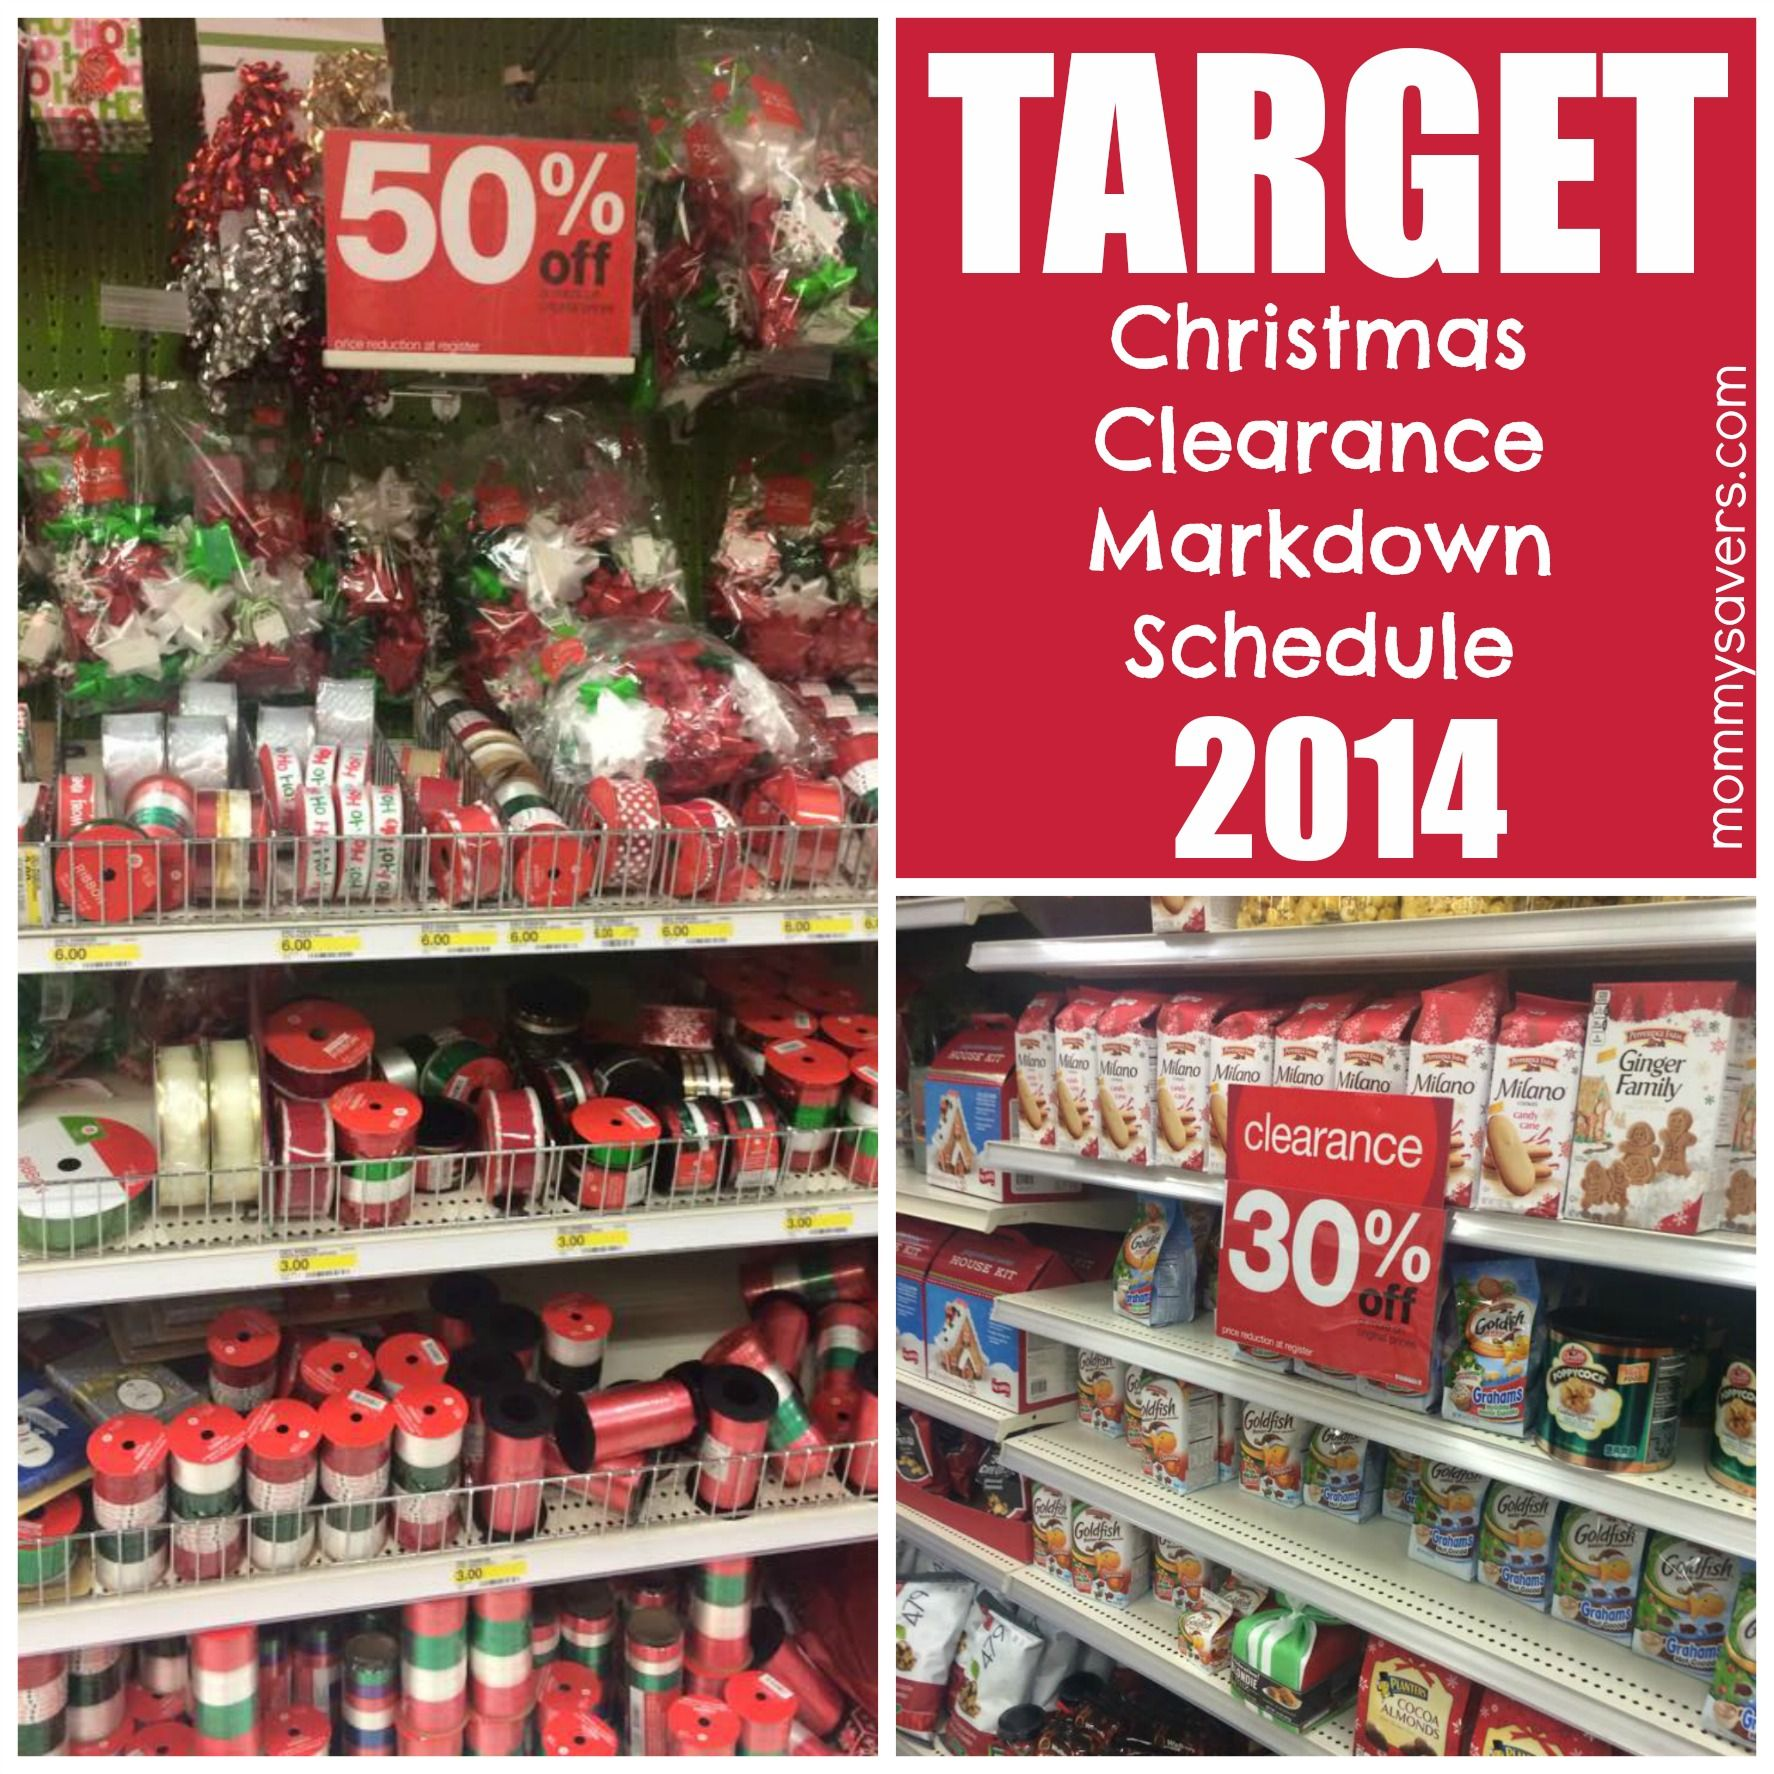 target christmas clearance 2014 target holiday markdowns usually follow a 3 3 2 schedule clearance merchandise goes to 50 off the day after the holiday - Target Christmas Clearance Schedule